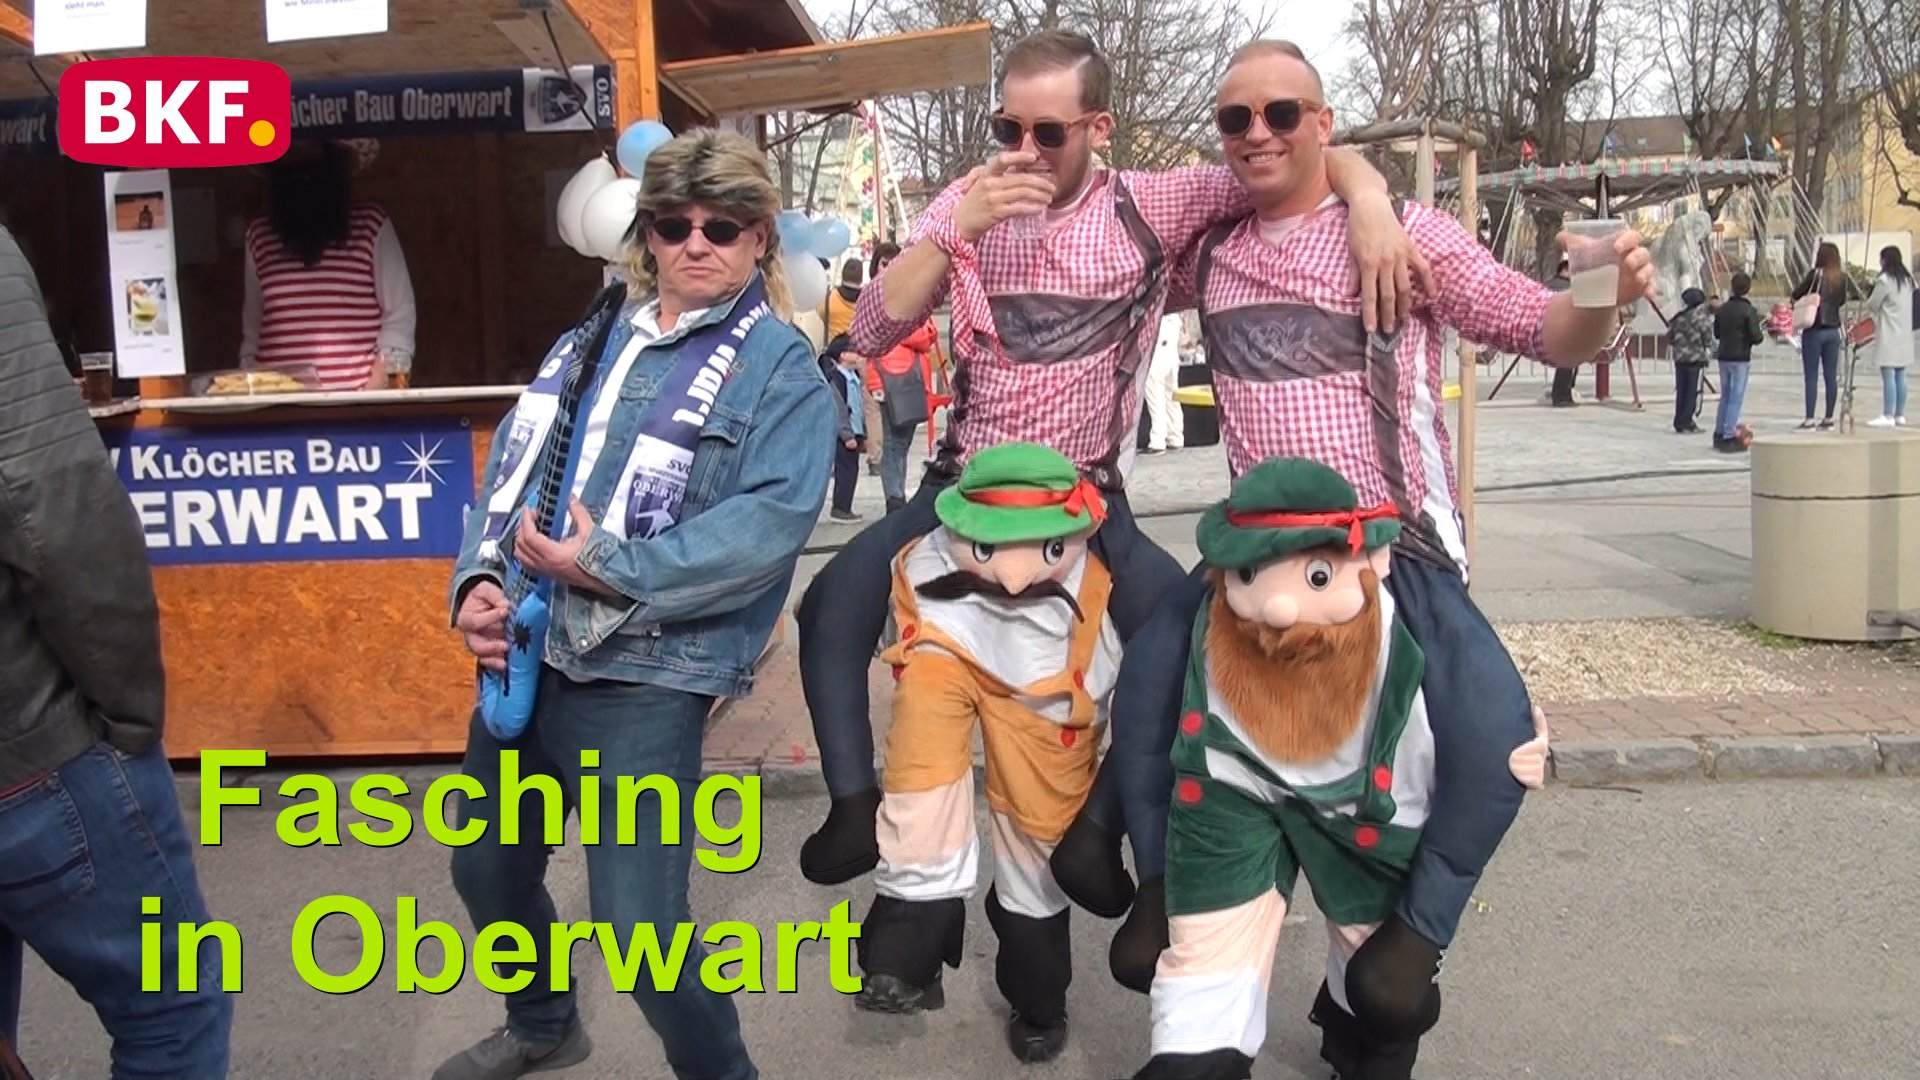 Fasching in Oberwart